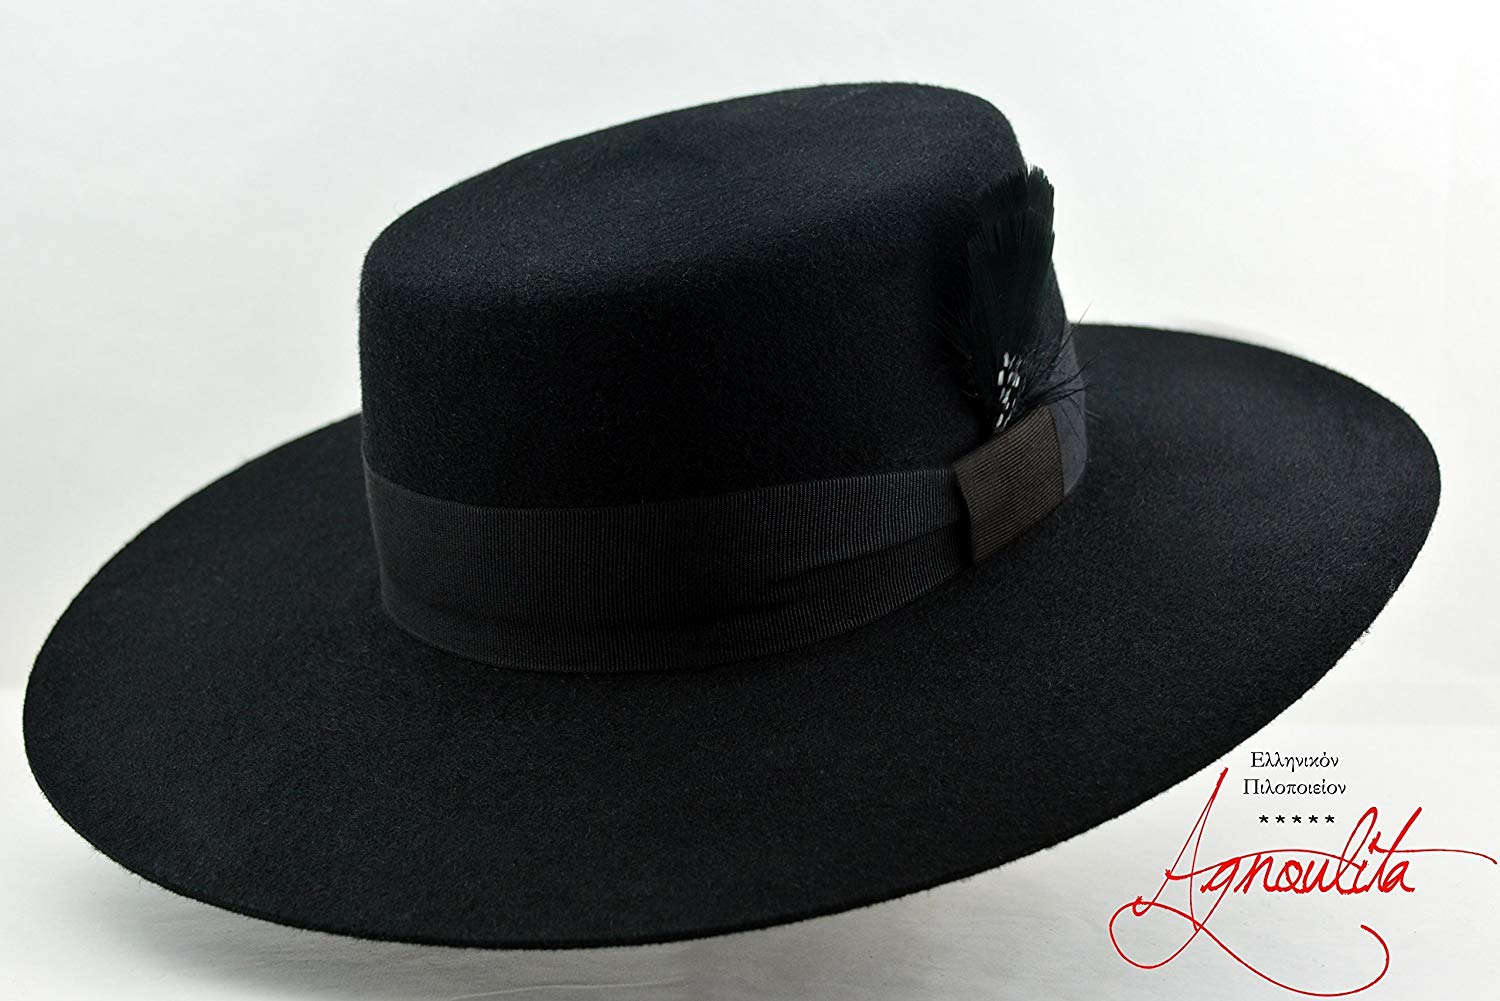 f6cb7cf6d16 Get Quotations · The Dress Bolero - Black Wool Felt Flat Crown Bolero Hat - Wide  Brim - Men